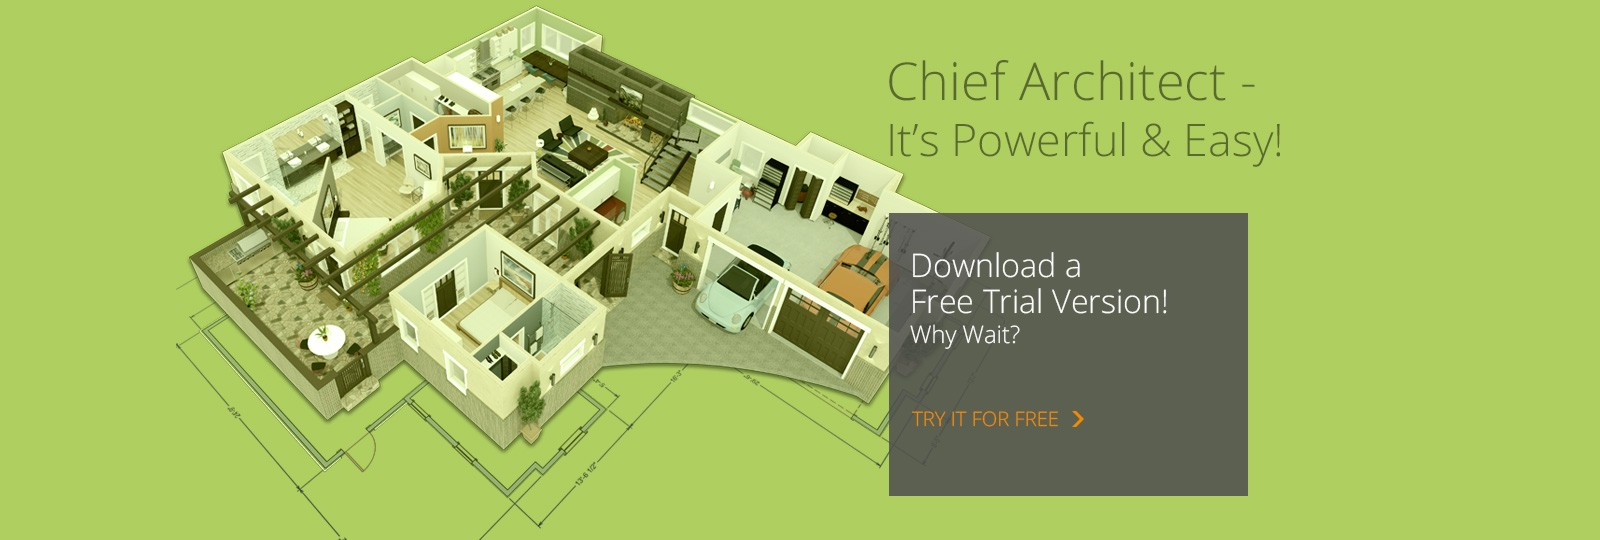 Architectural home design software by chief architect for Home architect design software free download